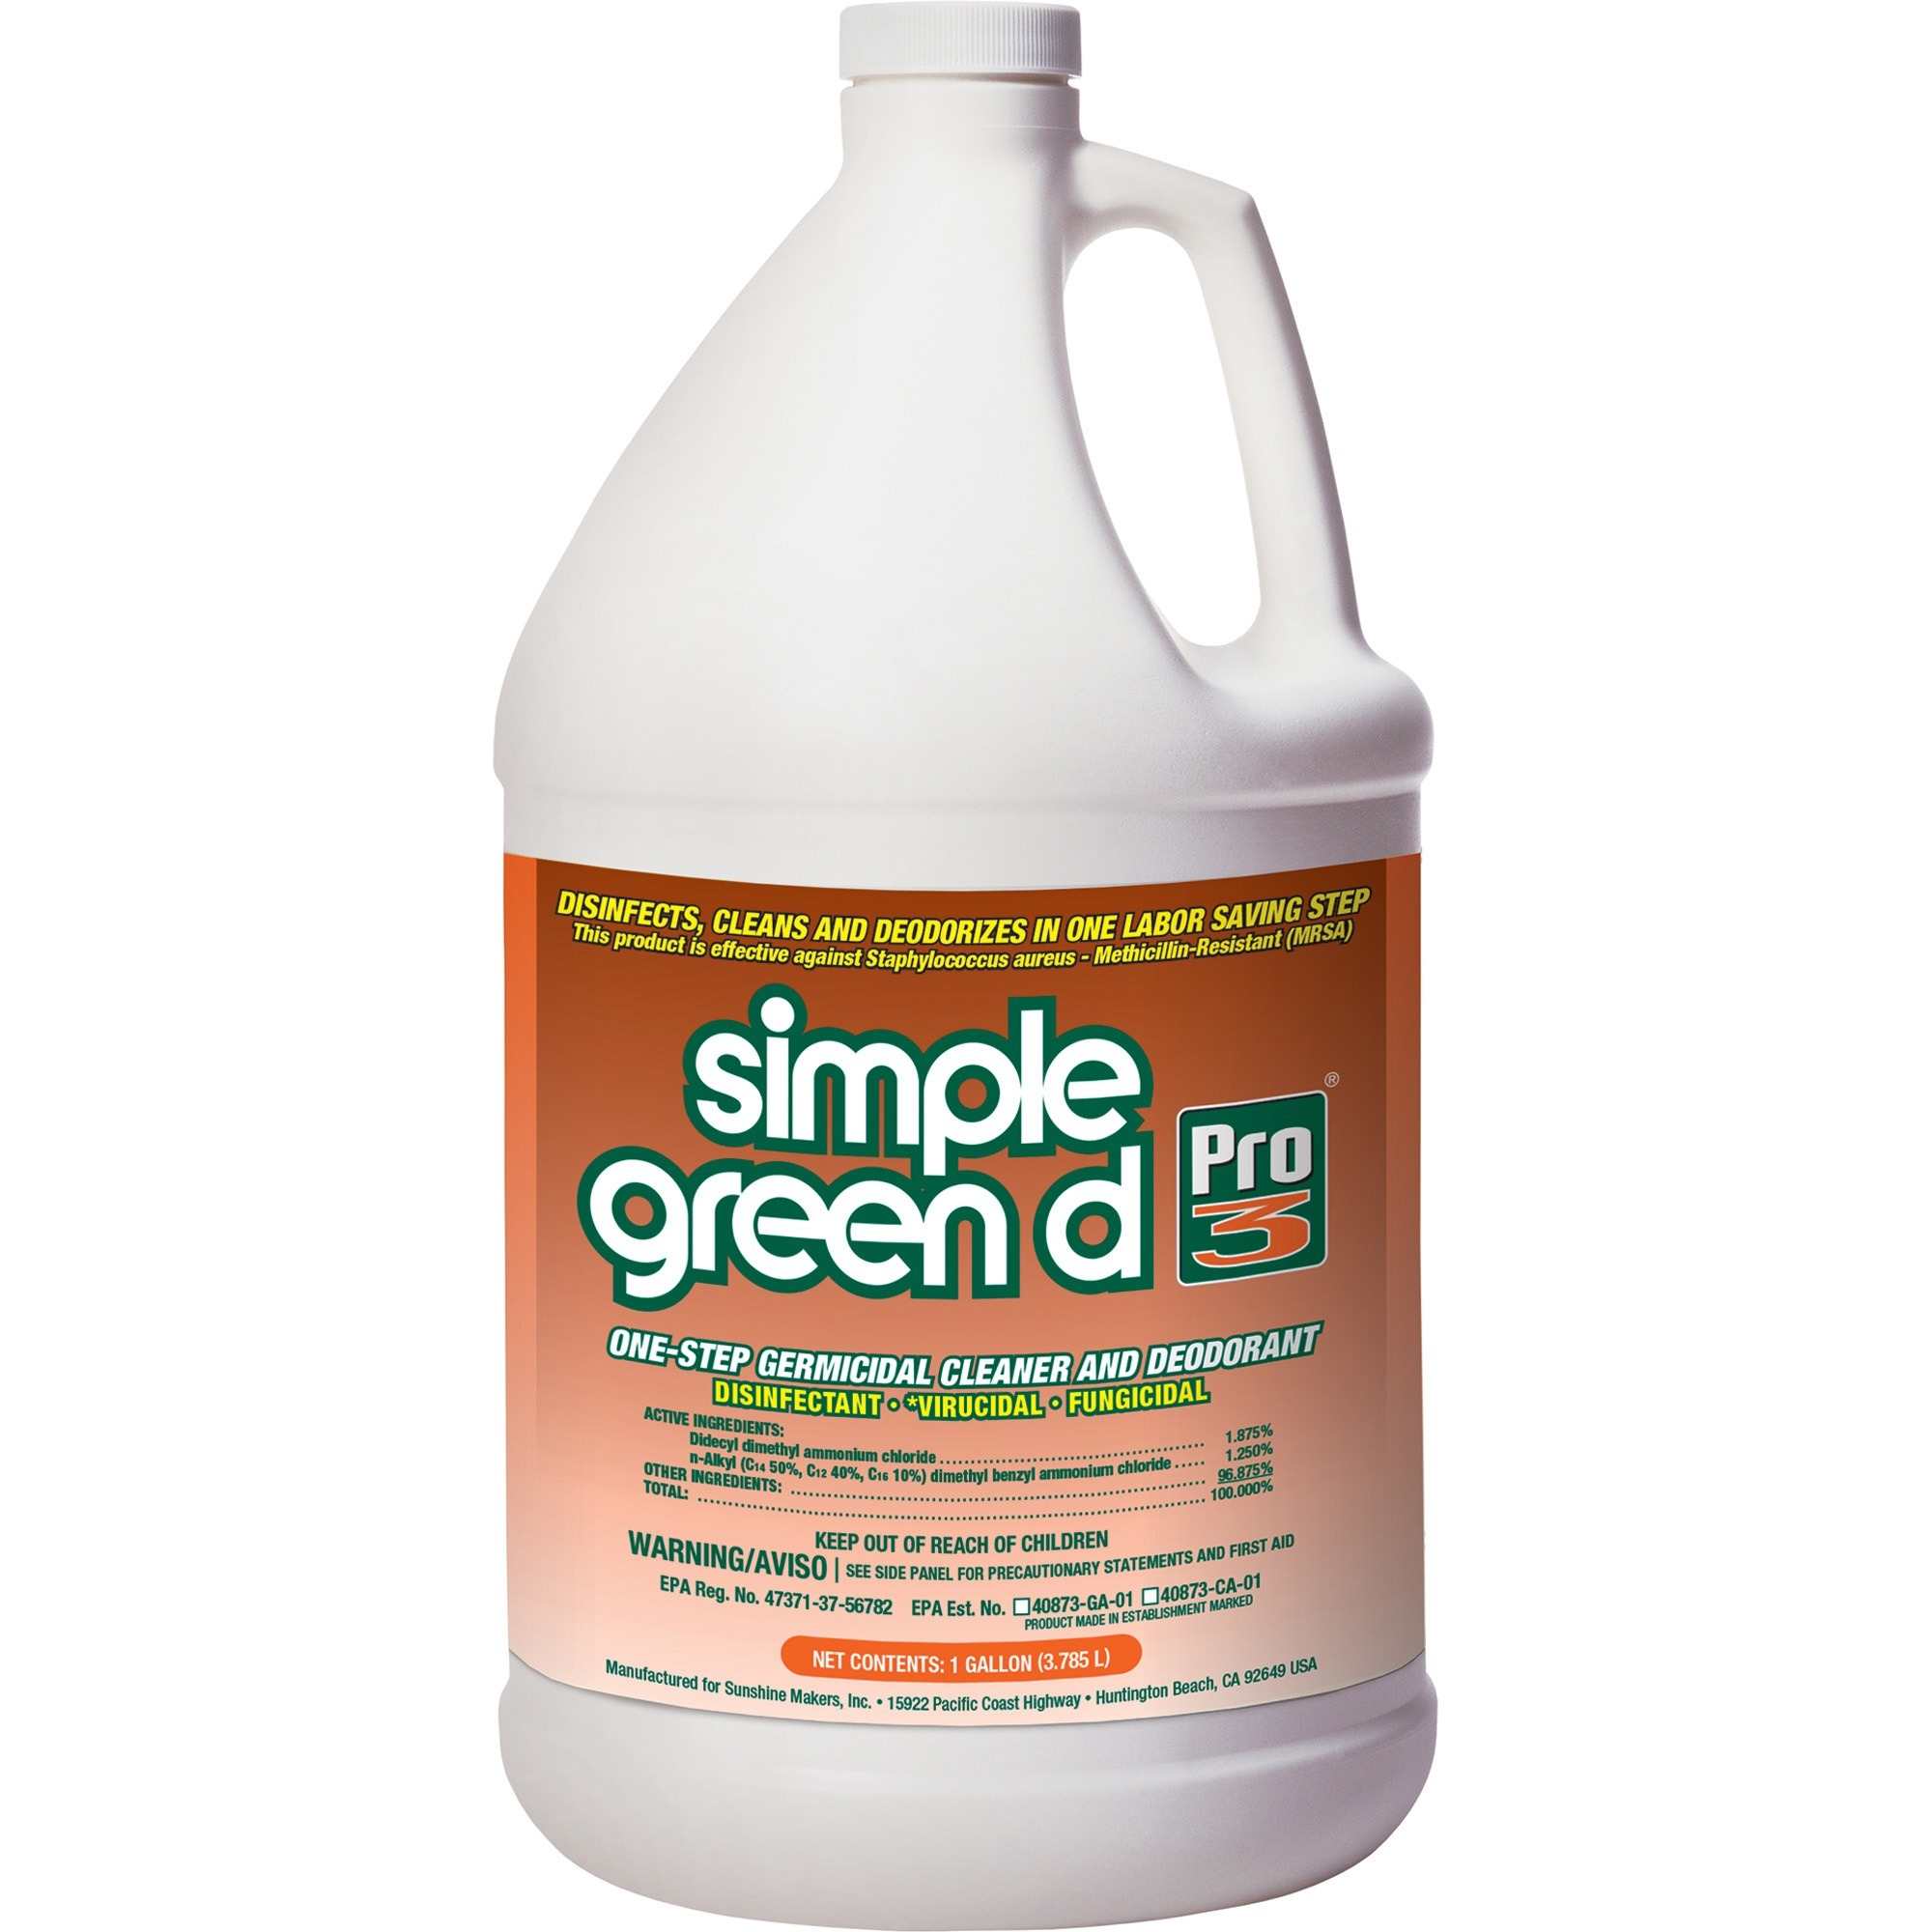 Simple Green, SMP30301, 1-Step Germicidal Cleaner/Deodorant, 1 Each, Green